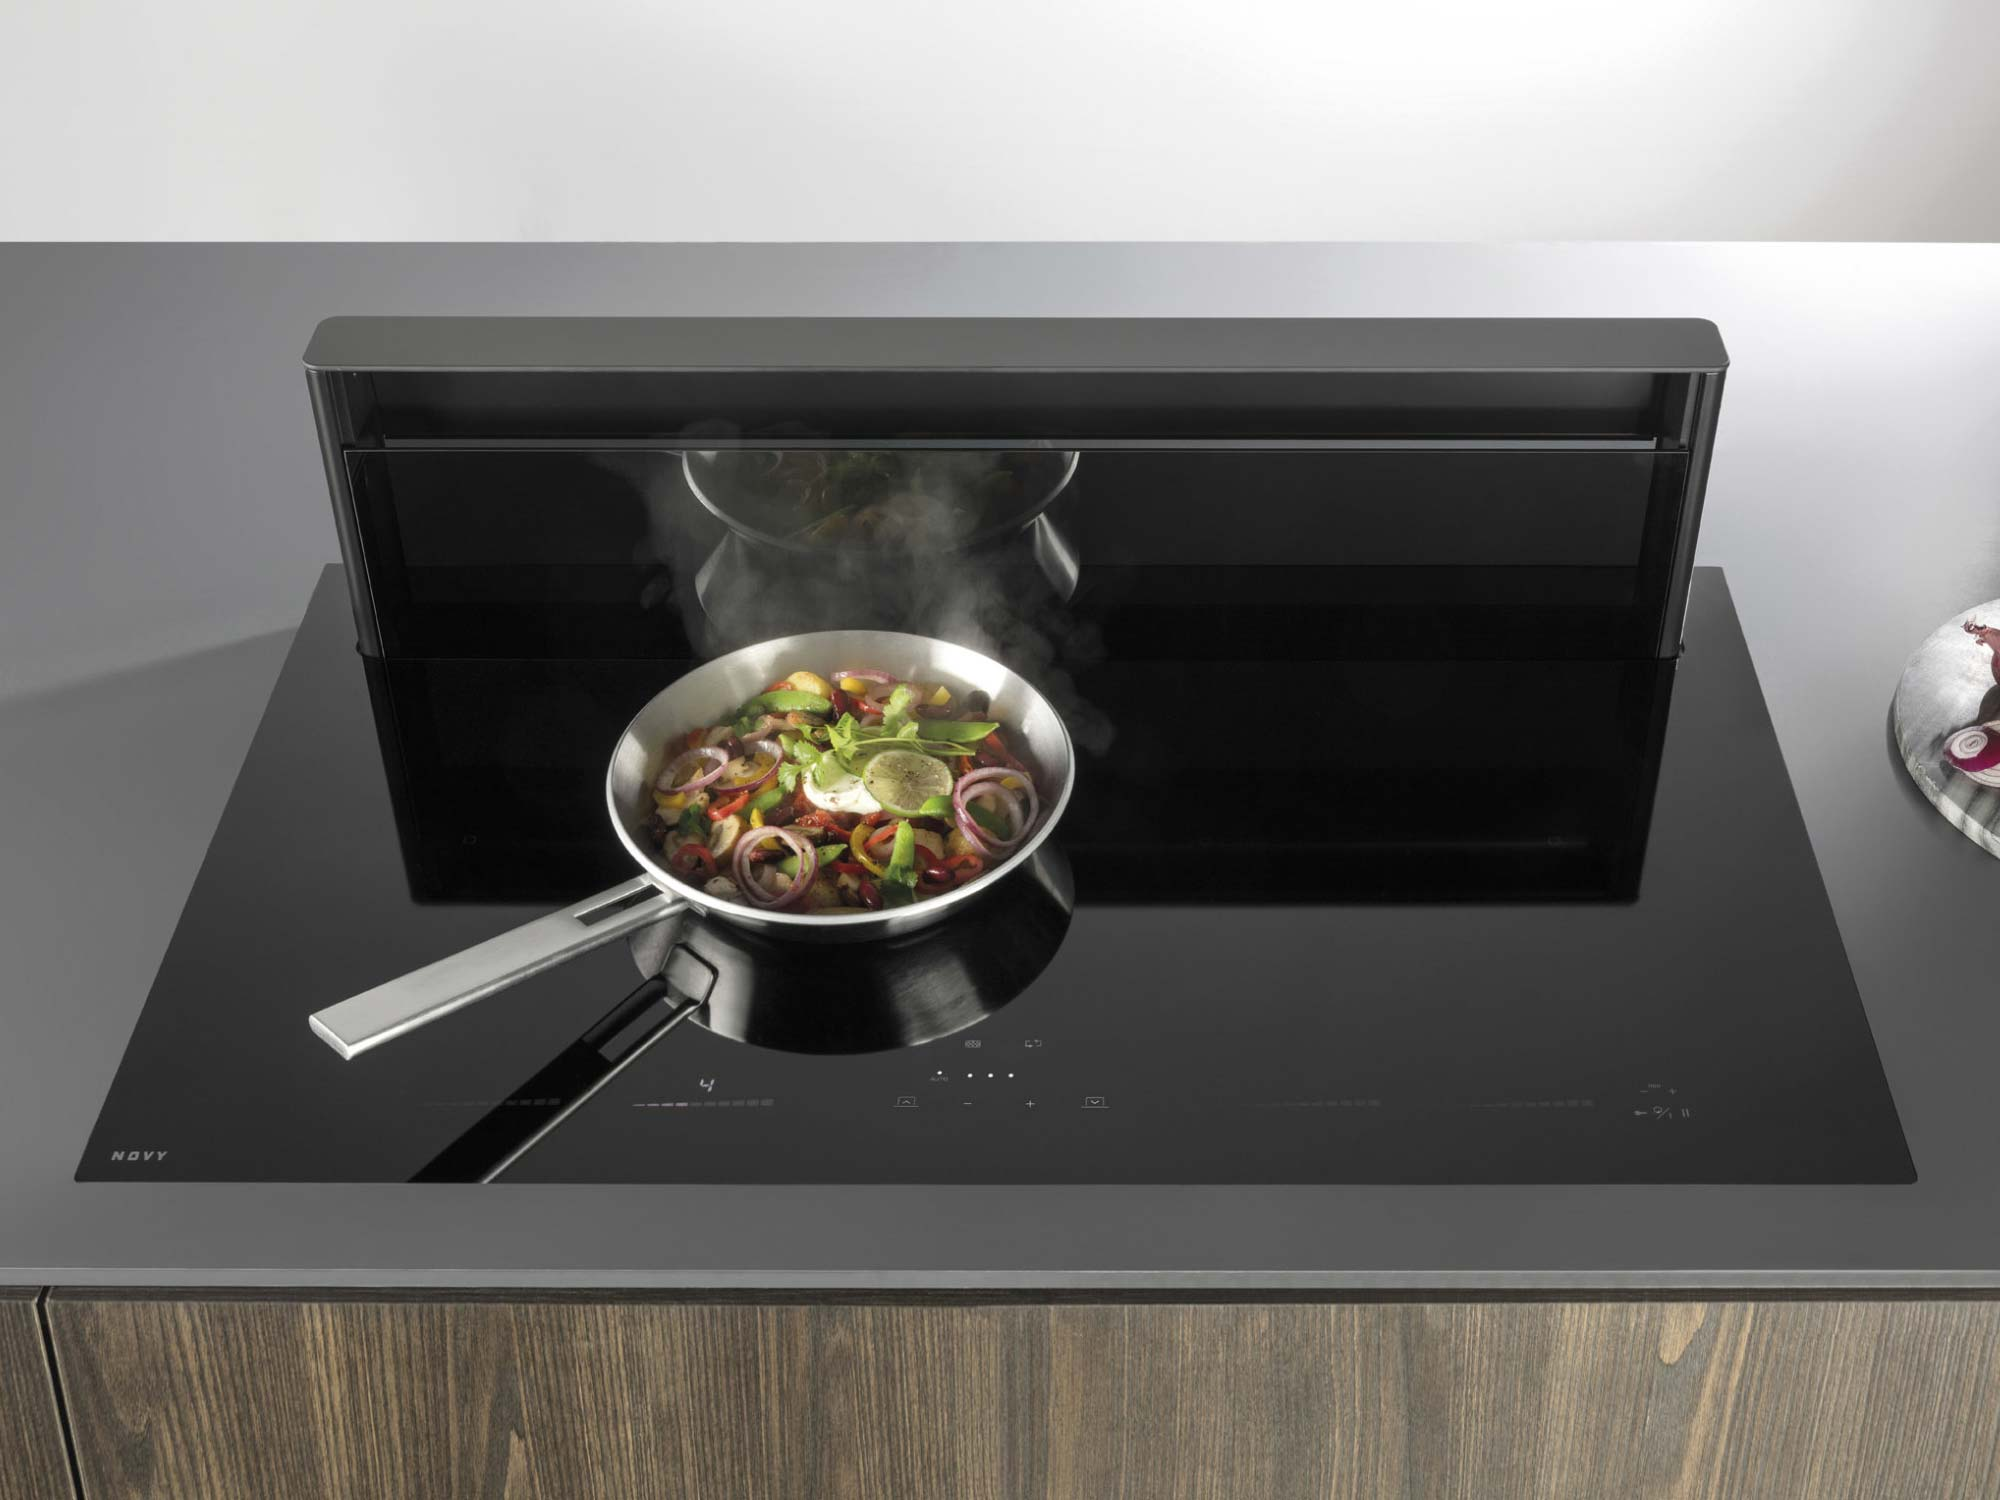 Downdraft kitchen hob example with pan - Hubble Kitchens